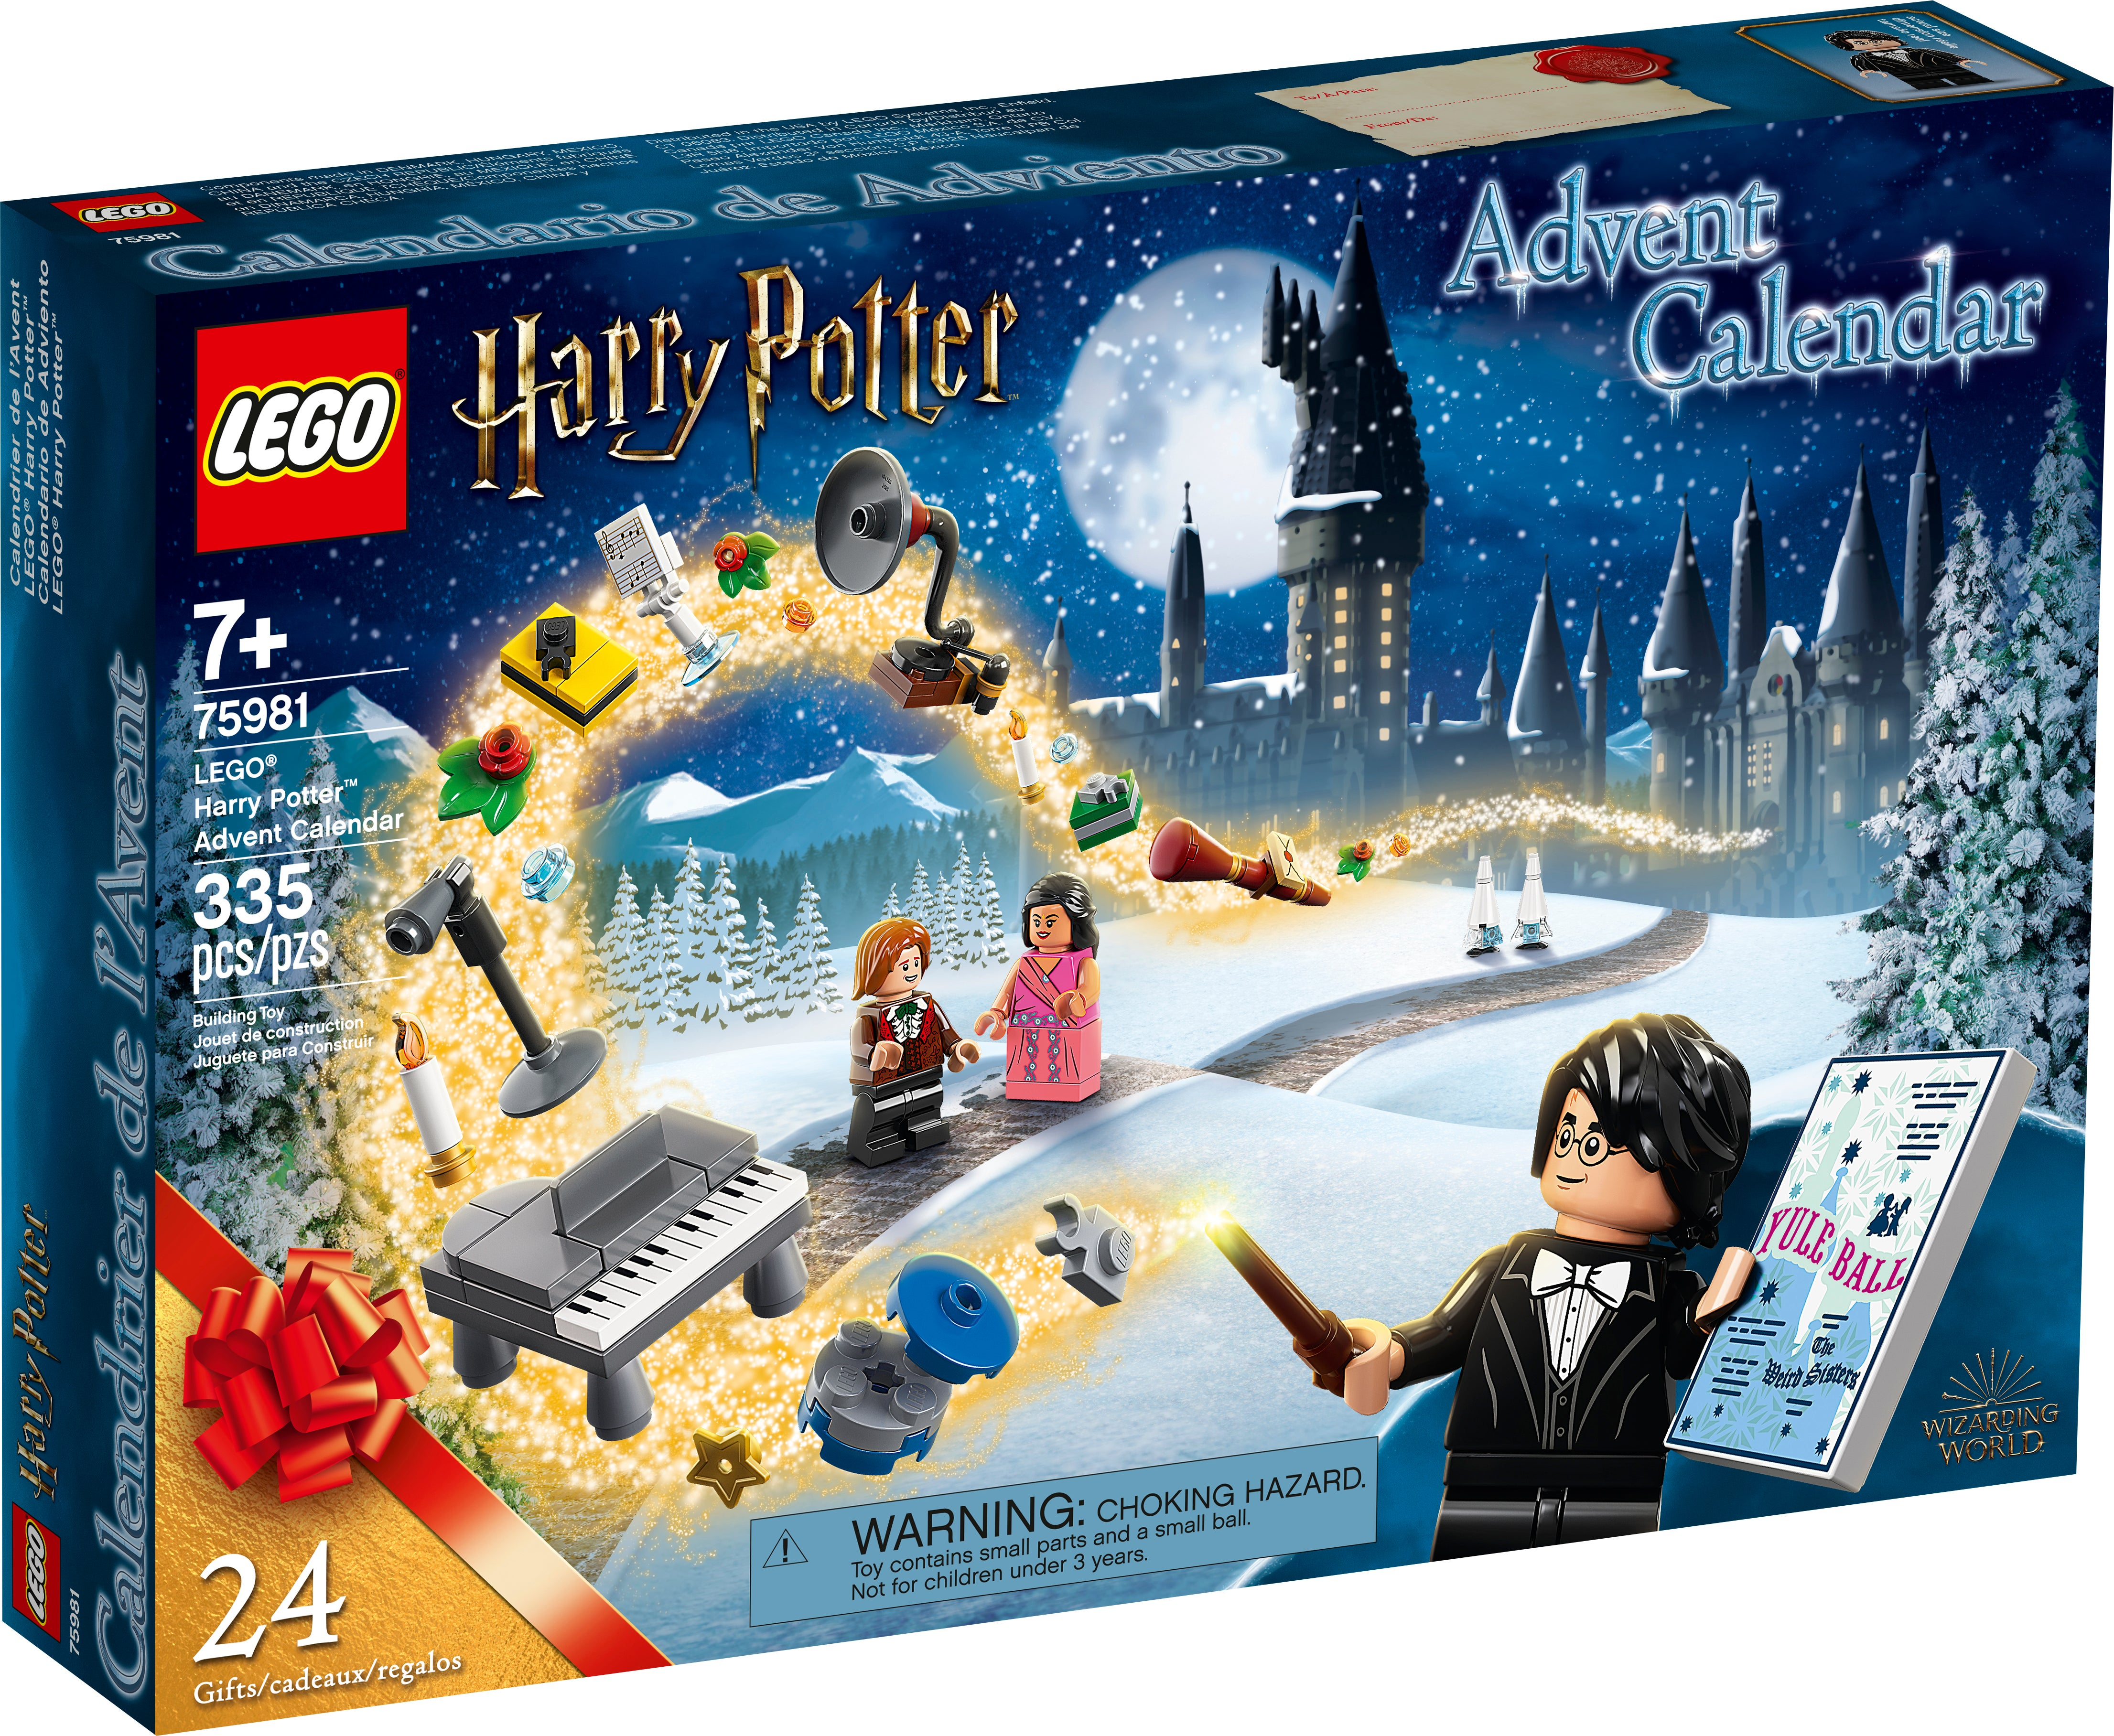 LEGO Harry Potter Advent Calendar 75964 Microbuild x2 Table w// Candle /& Glasses